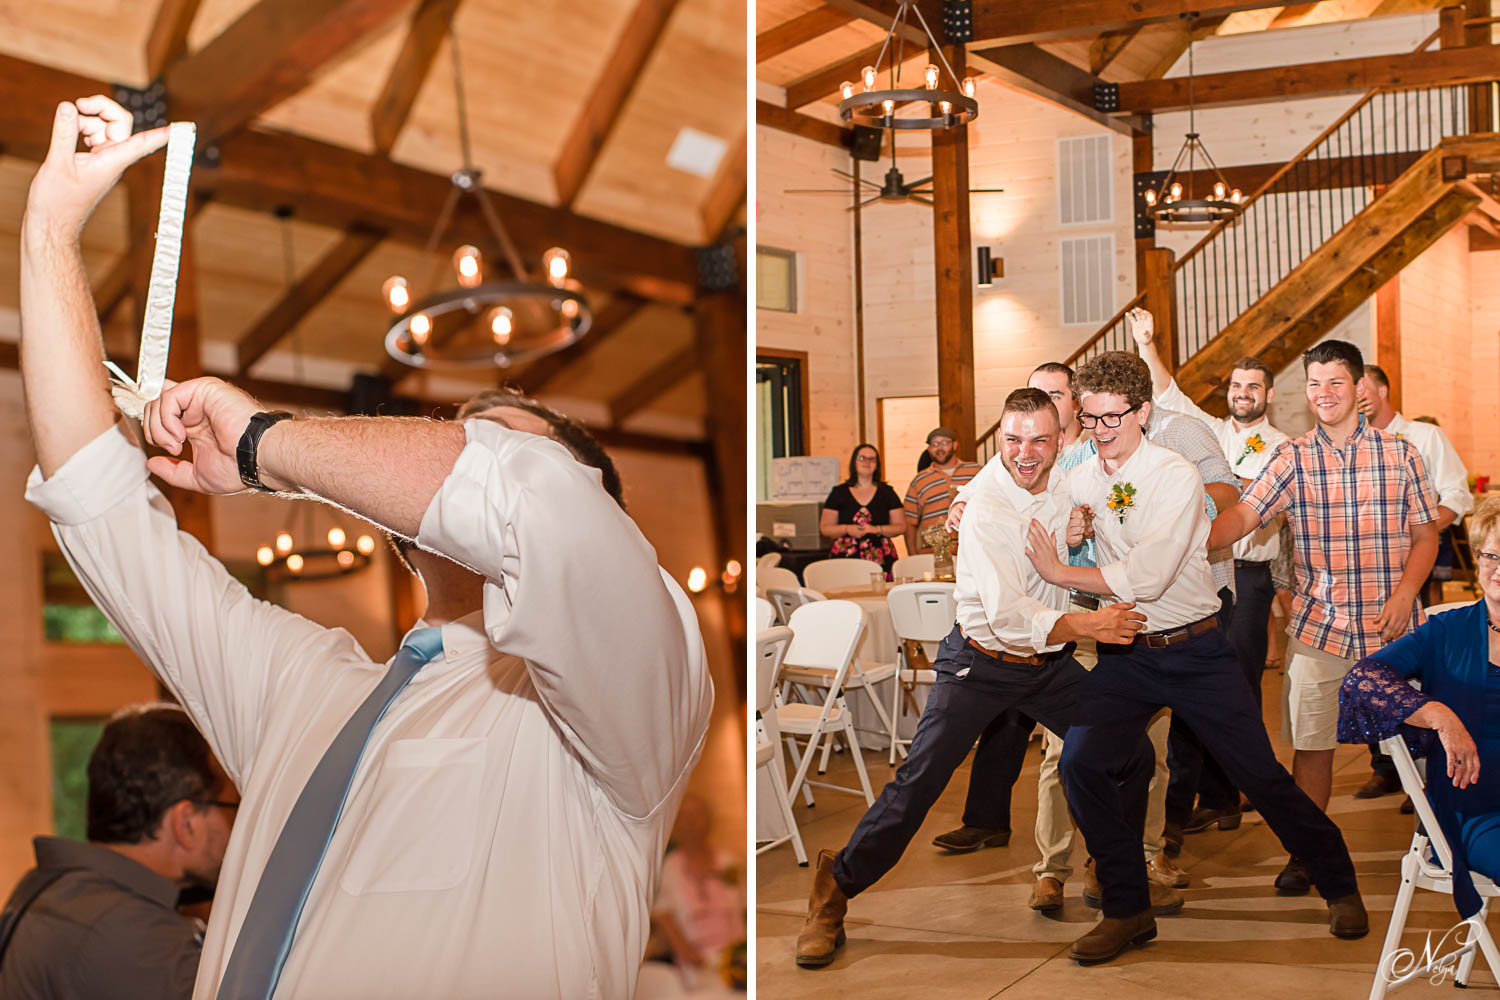 single guystrying to catch the garter during reception at Hiwassee River Weddings